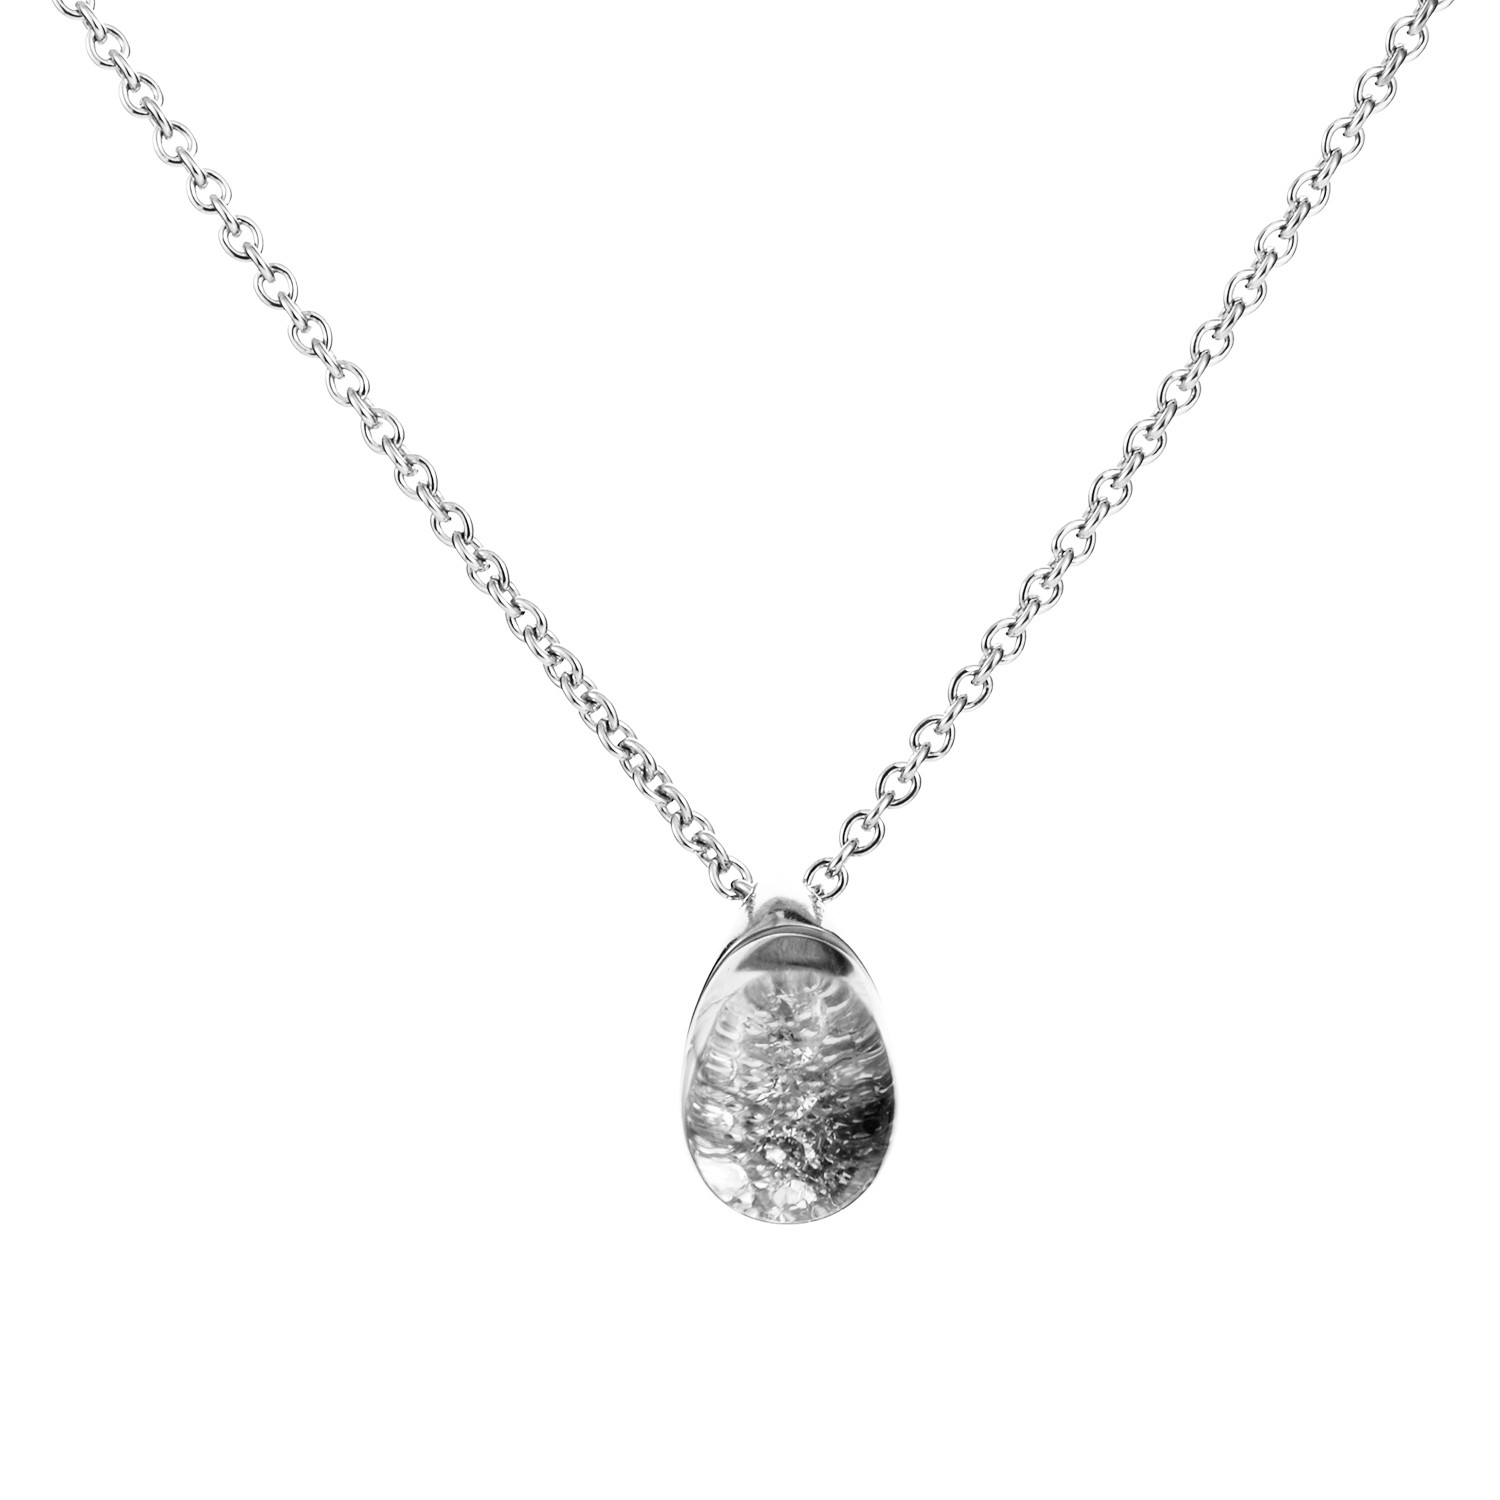 Cartier Myst de Cartier 18K White Gold Pendant Necklace